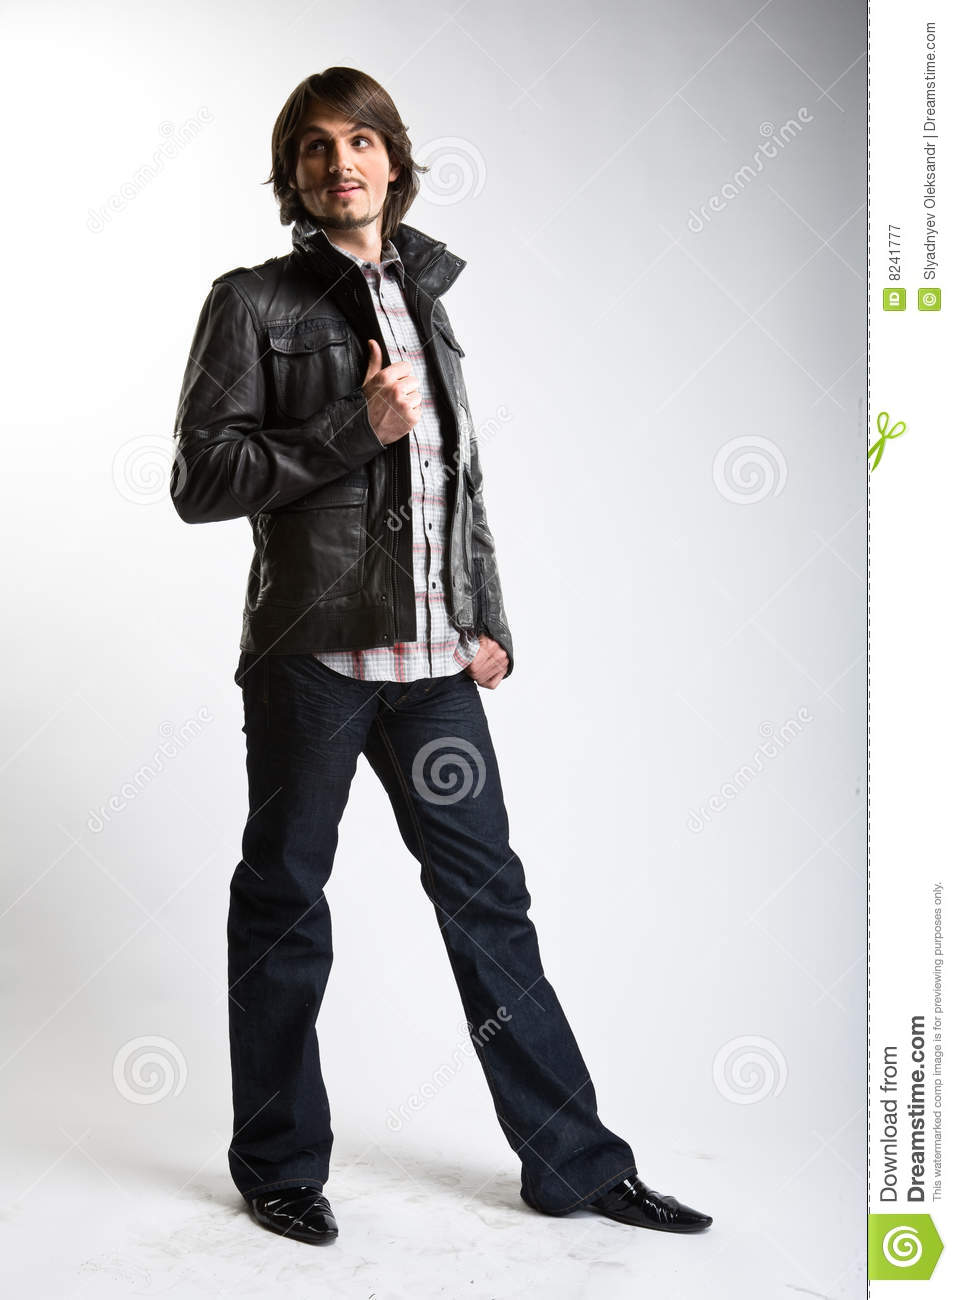 Fashionable model man in leather black jacket